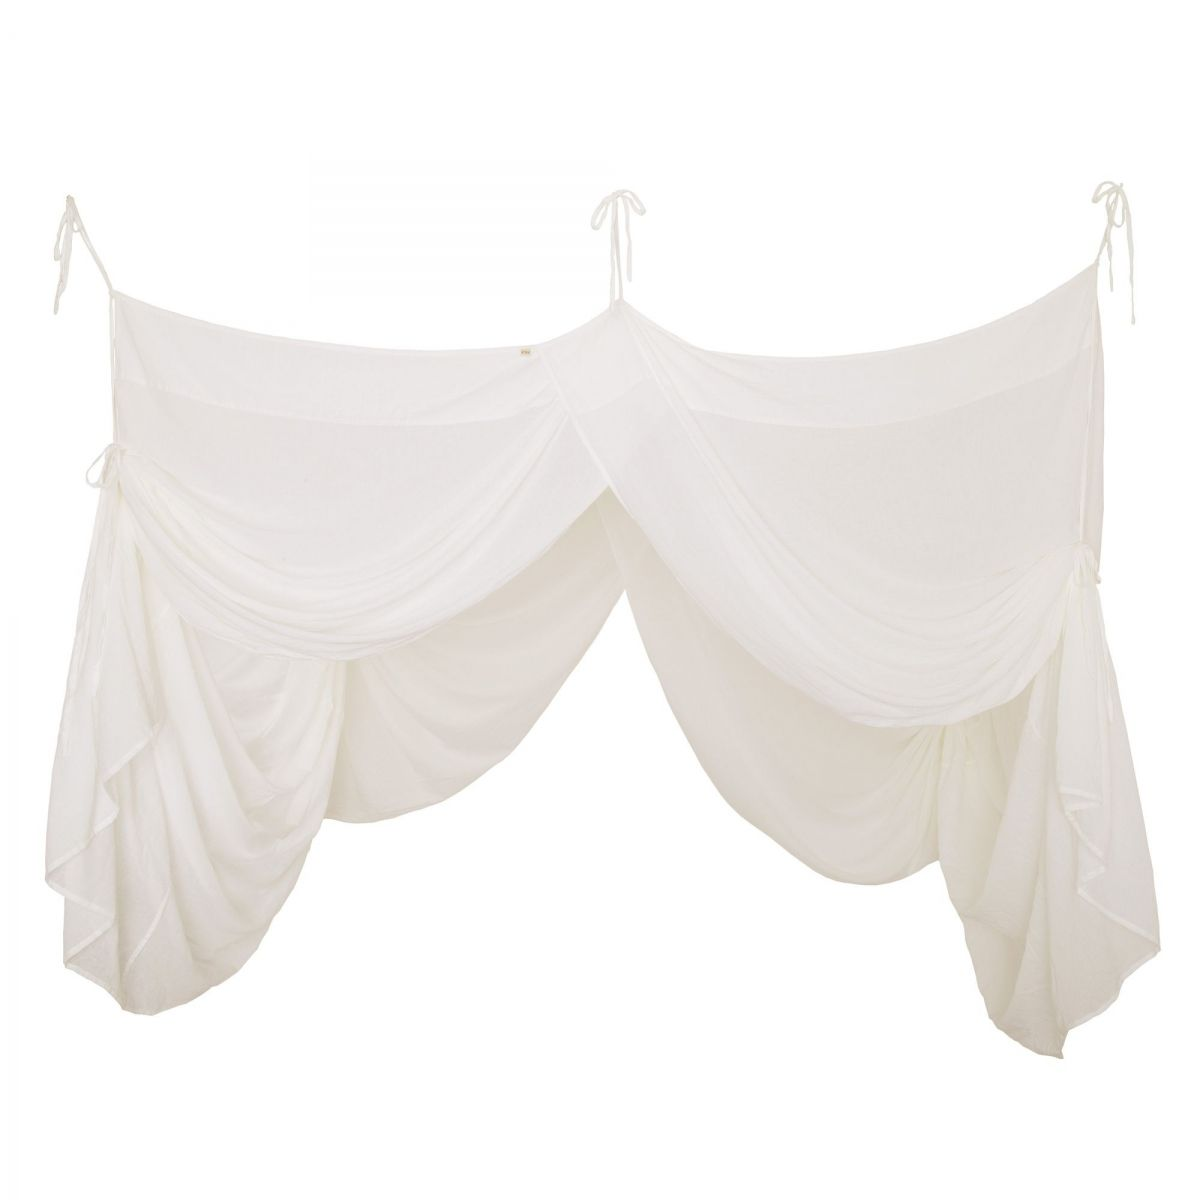 Numero 74 Bed Canopy Drape natural